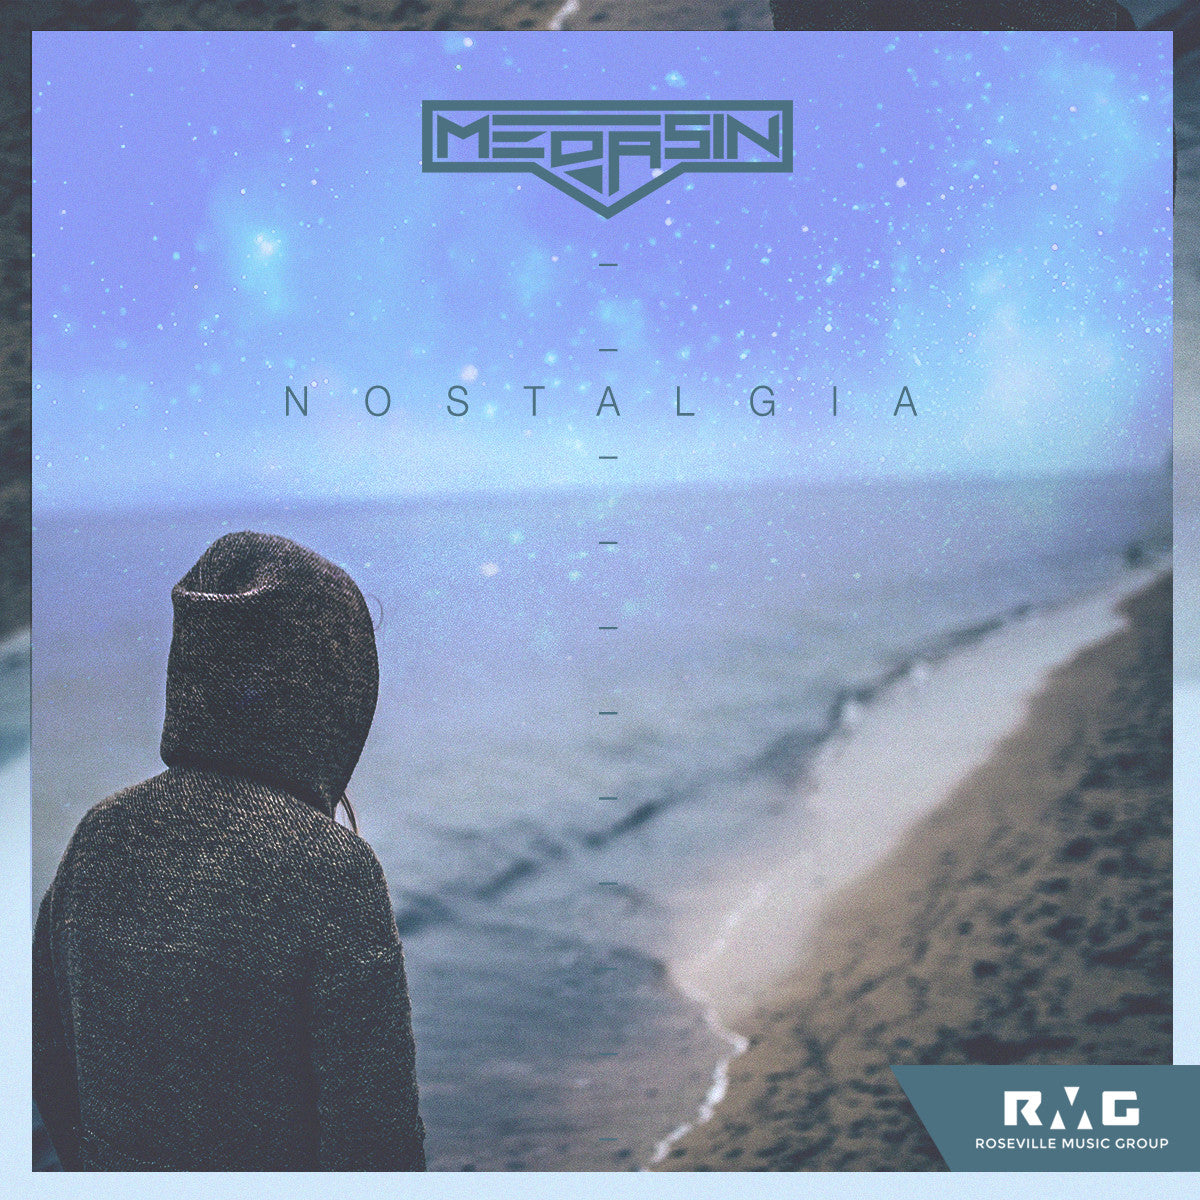 SINGLE - Medasin - Nostalgia